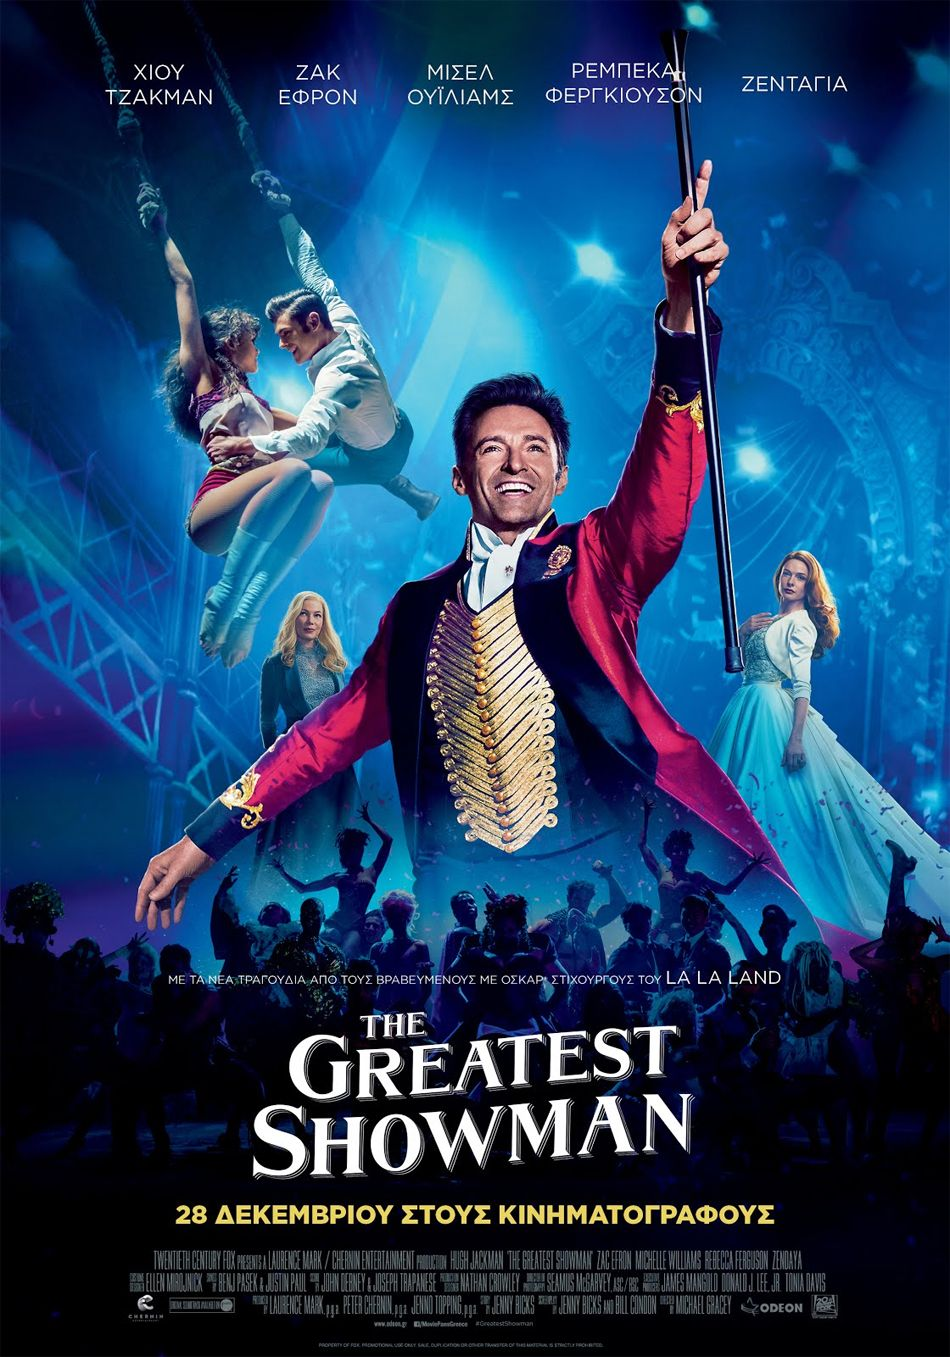 The Greatest Showman Poster Πόστερ